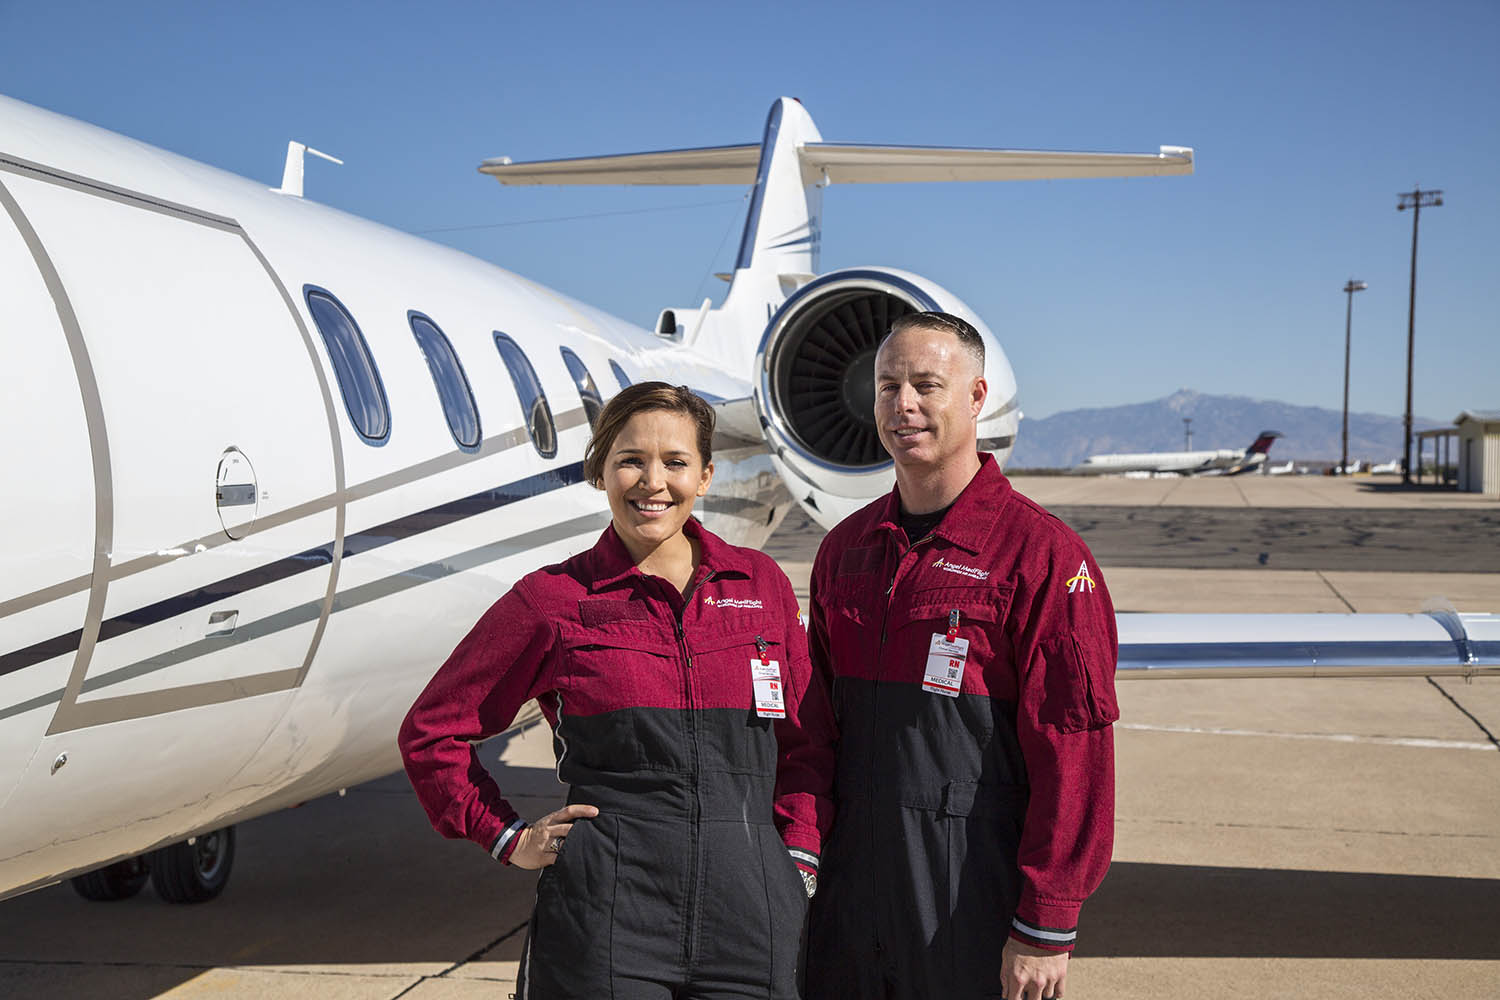 Angel MedFlight Air Ambulance with Flight Crew | Medical Flight Guide for Patients and Families